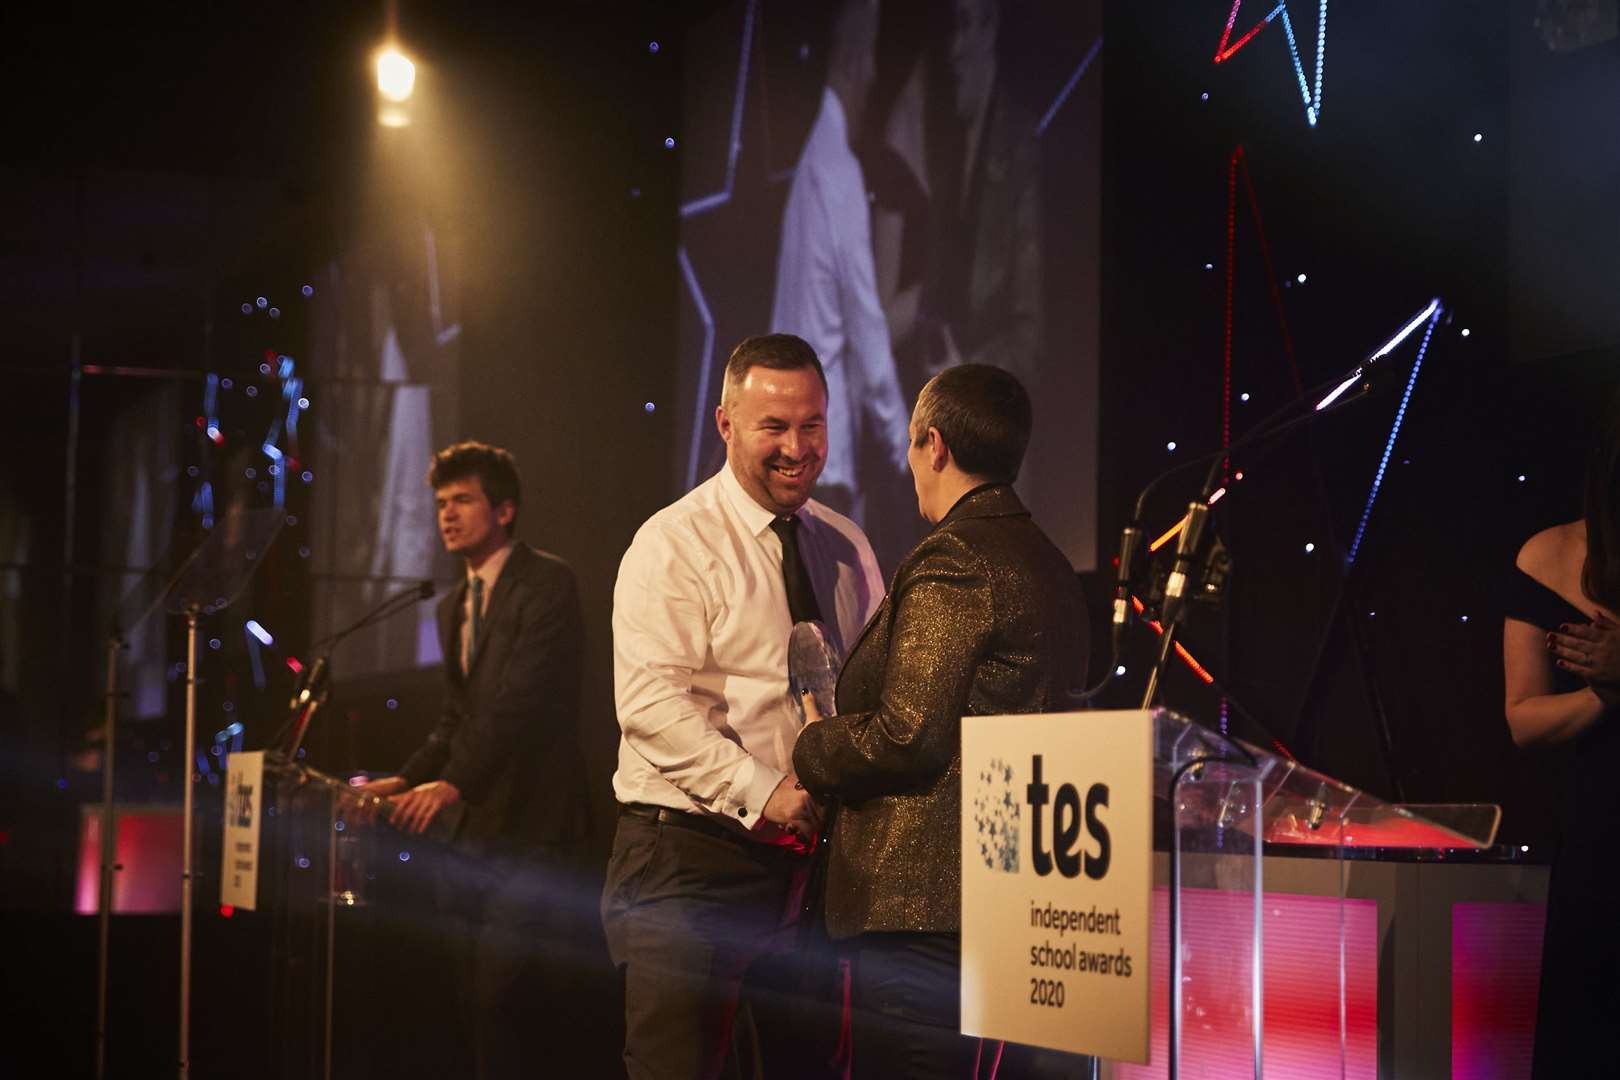 Senior team leader of Wilds Lodge School Simon Jugovic receives the award on stage